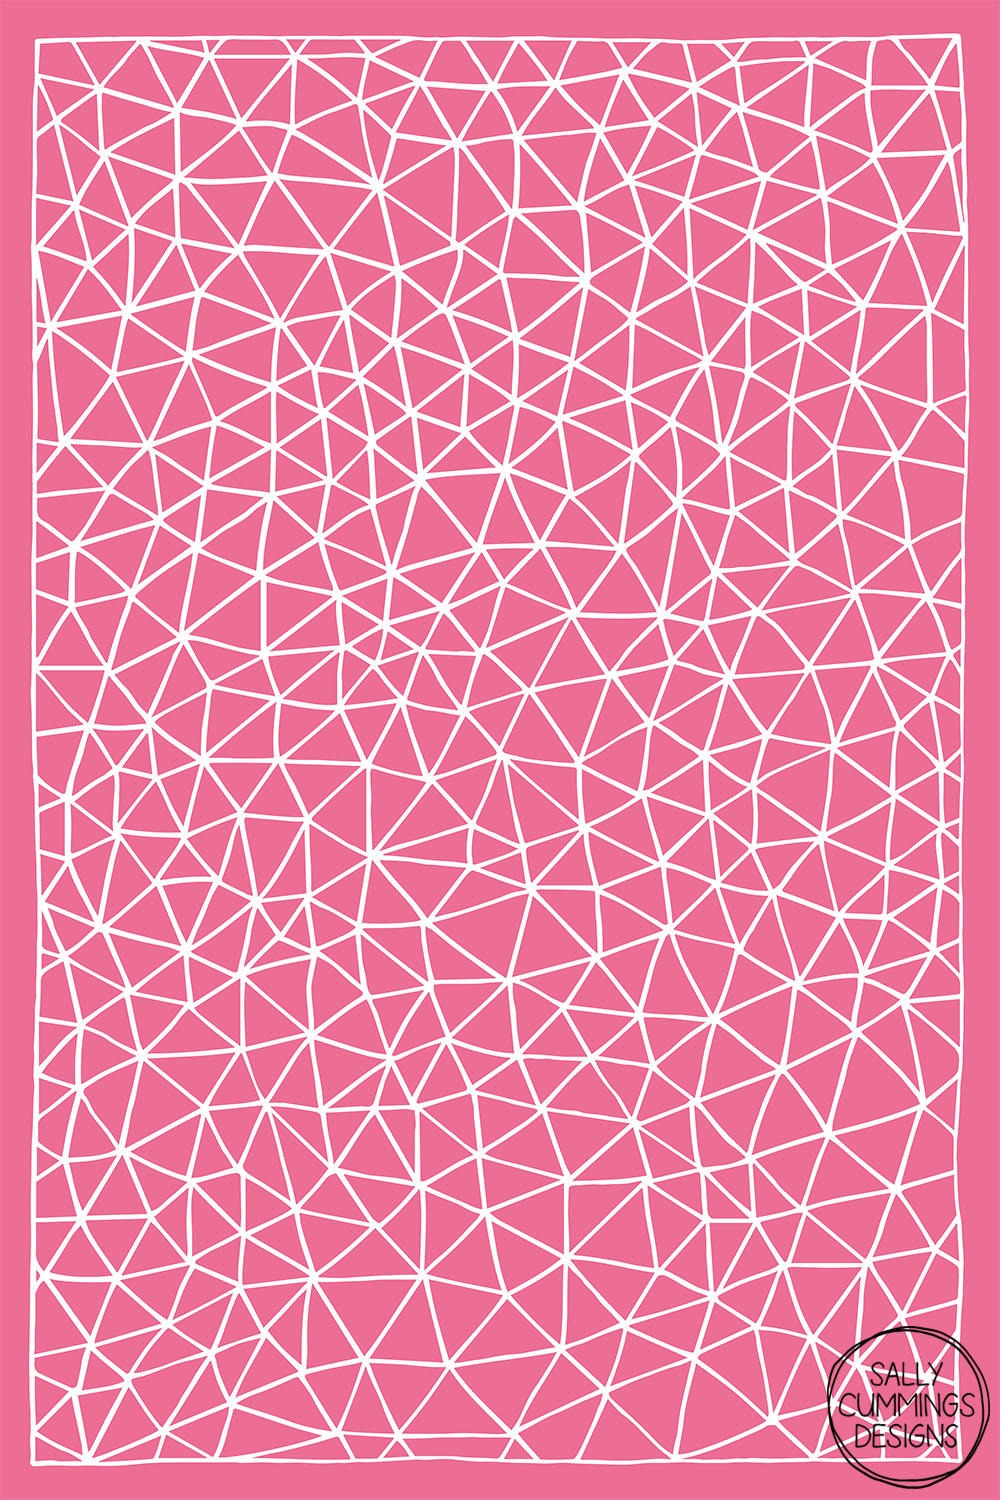 Sally Cummings Designs - Connectivity design (white on pink)